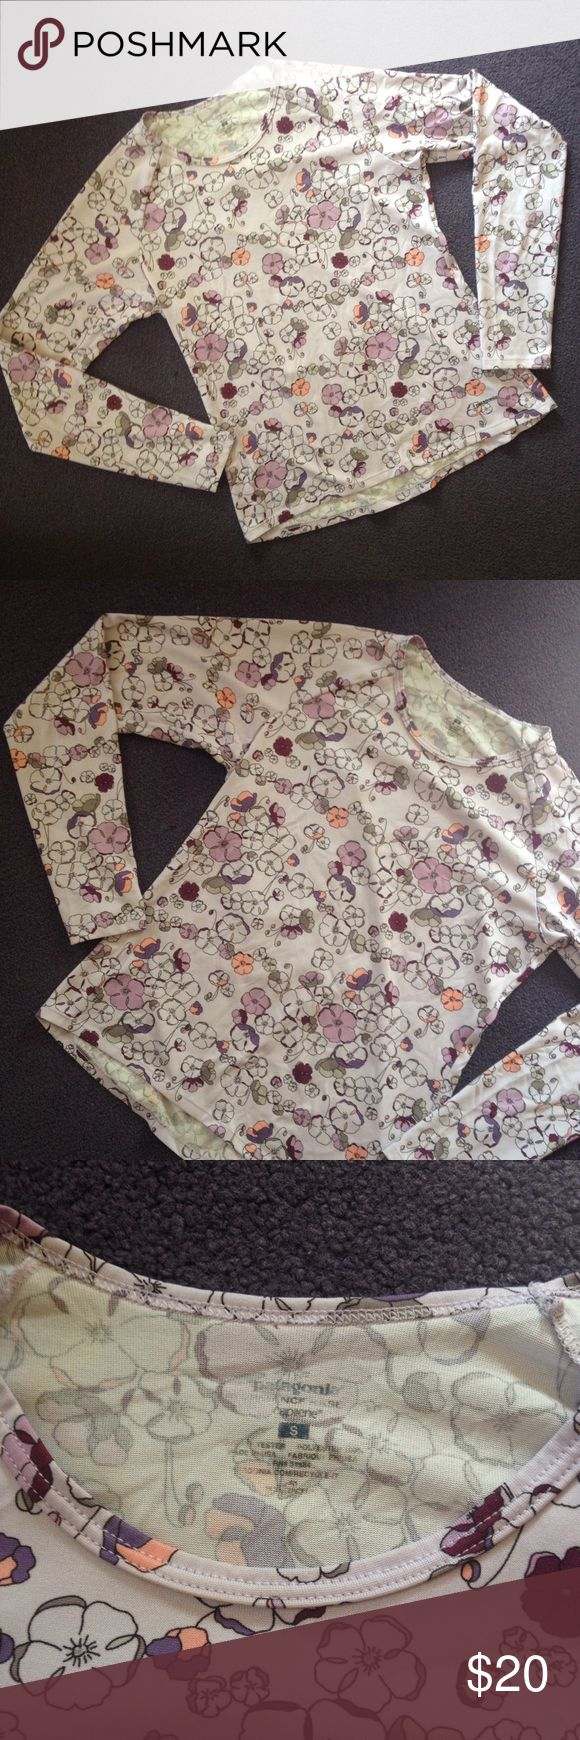 Patagonia capilene long sleeve top floral print S Patagonia Capilene top in a sweet floral print. Reminds me of cherry blossoms. The shirt is primarily shades of purple with gray and peach accents. In great shape - only significant sign of wear is that the inside printed tag area is starting to wet away a bit (see pics). Size small. Unstretched measurements available in photos. Questions, offers, and bundles welcome!! Patagonia Tops Tees - Long Sleeve